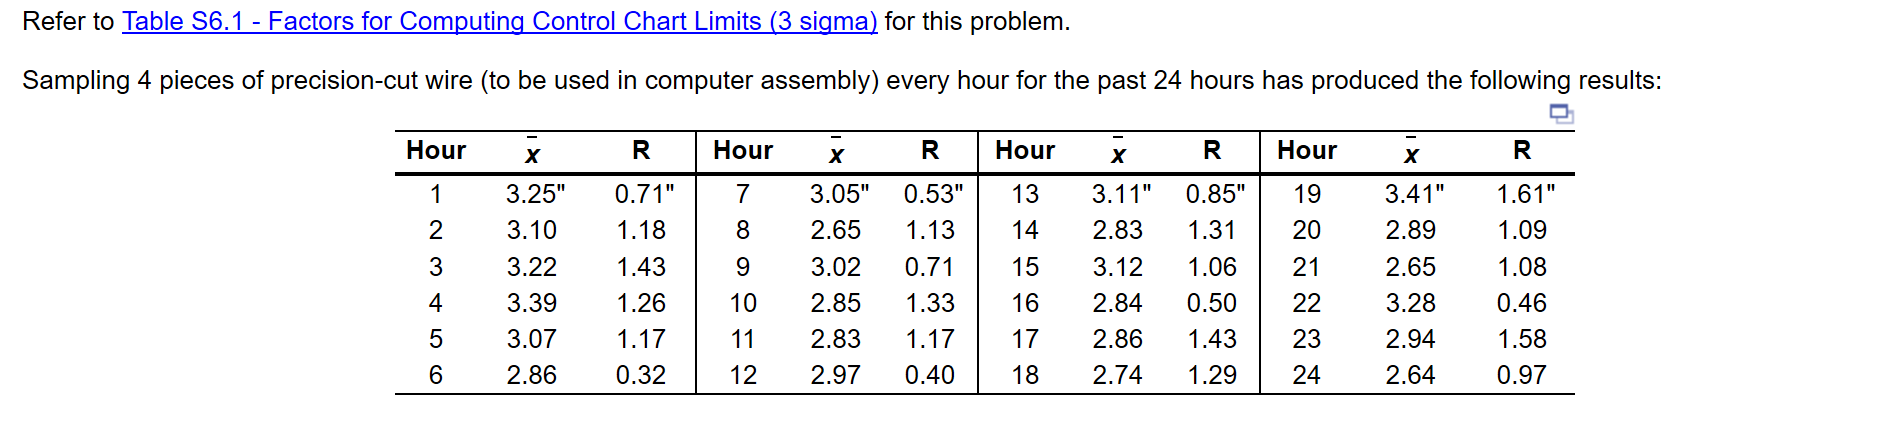 Refer to Table 56.1 - Factors for Computing Control Chart Limits (3 sigma) for this problem. Sampling 4 pieces of precision-c